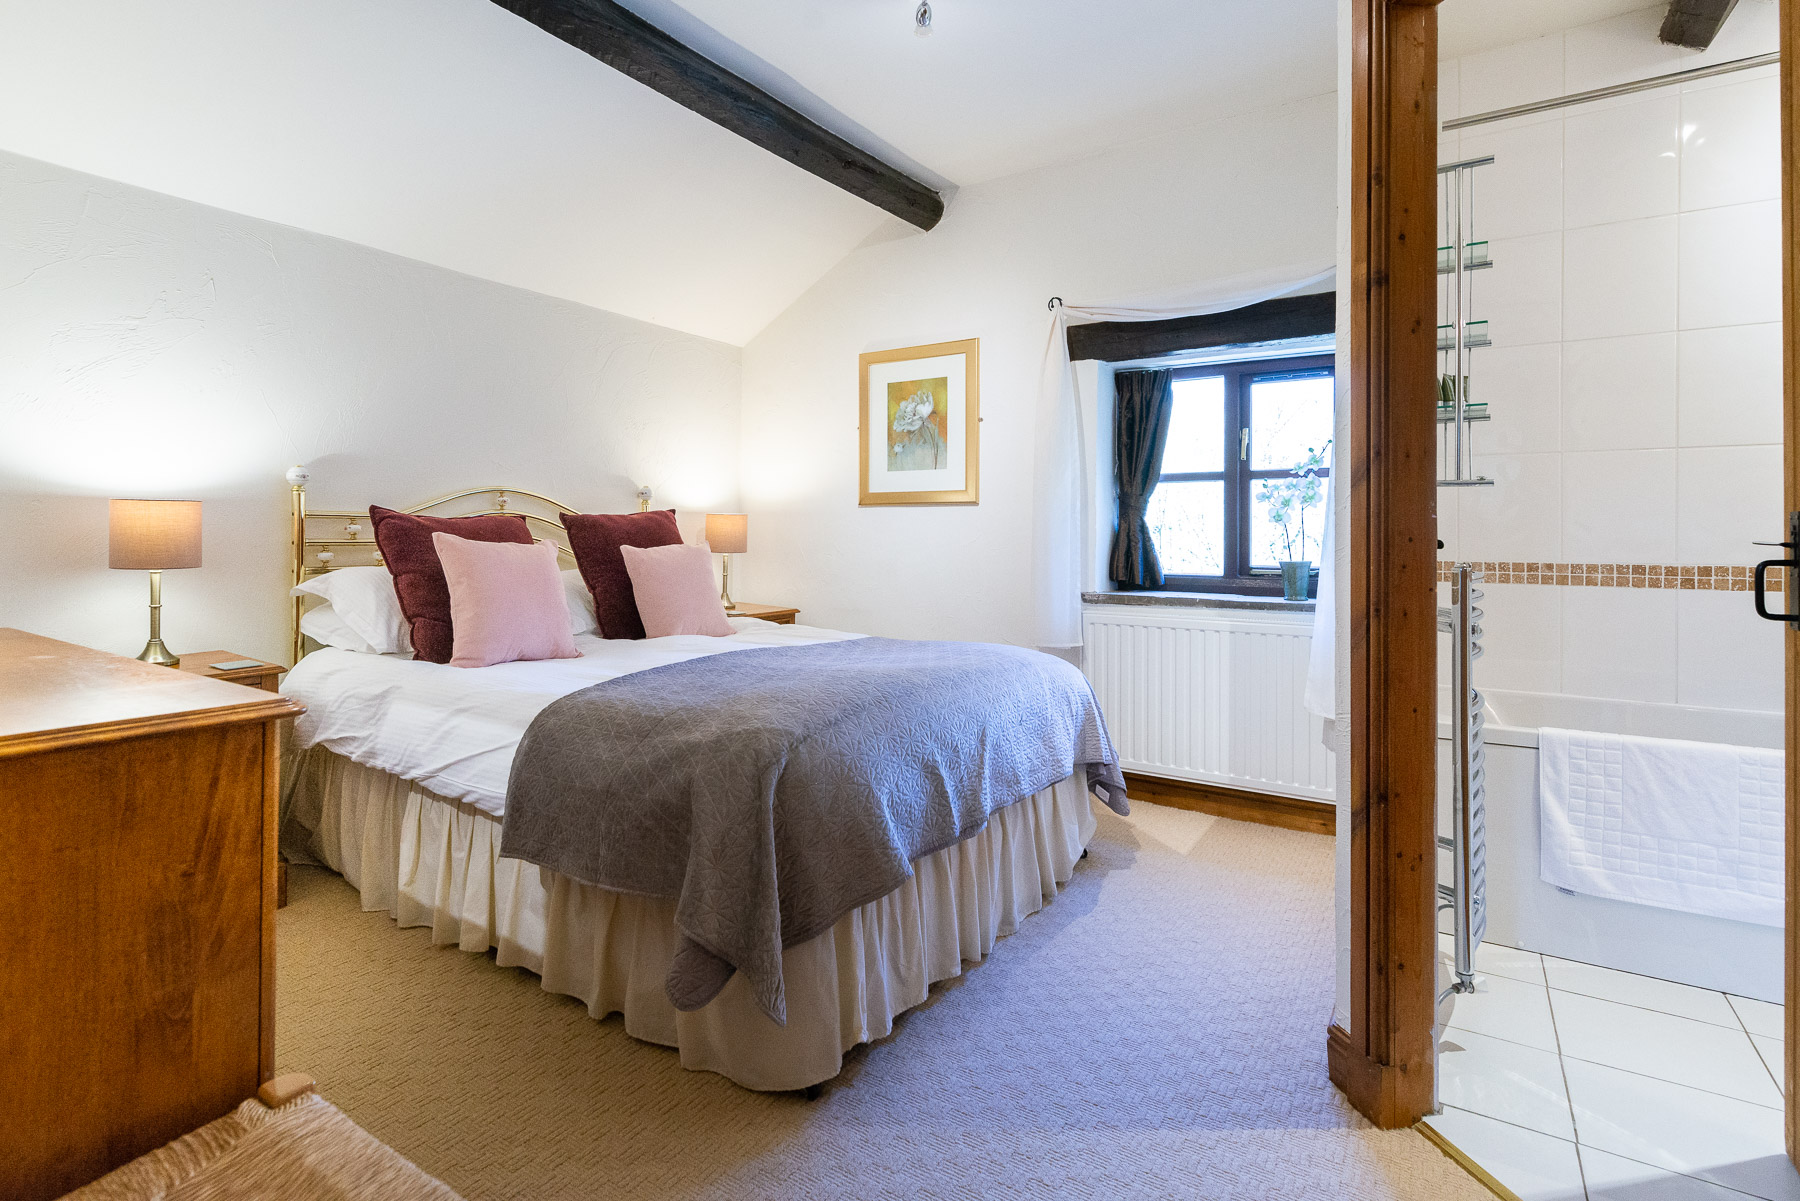 Beech Tree Cottage Bedroom. Boutique luxury Lancashire holiday cottage